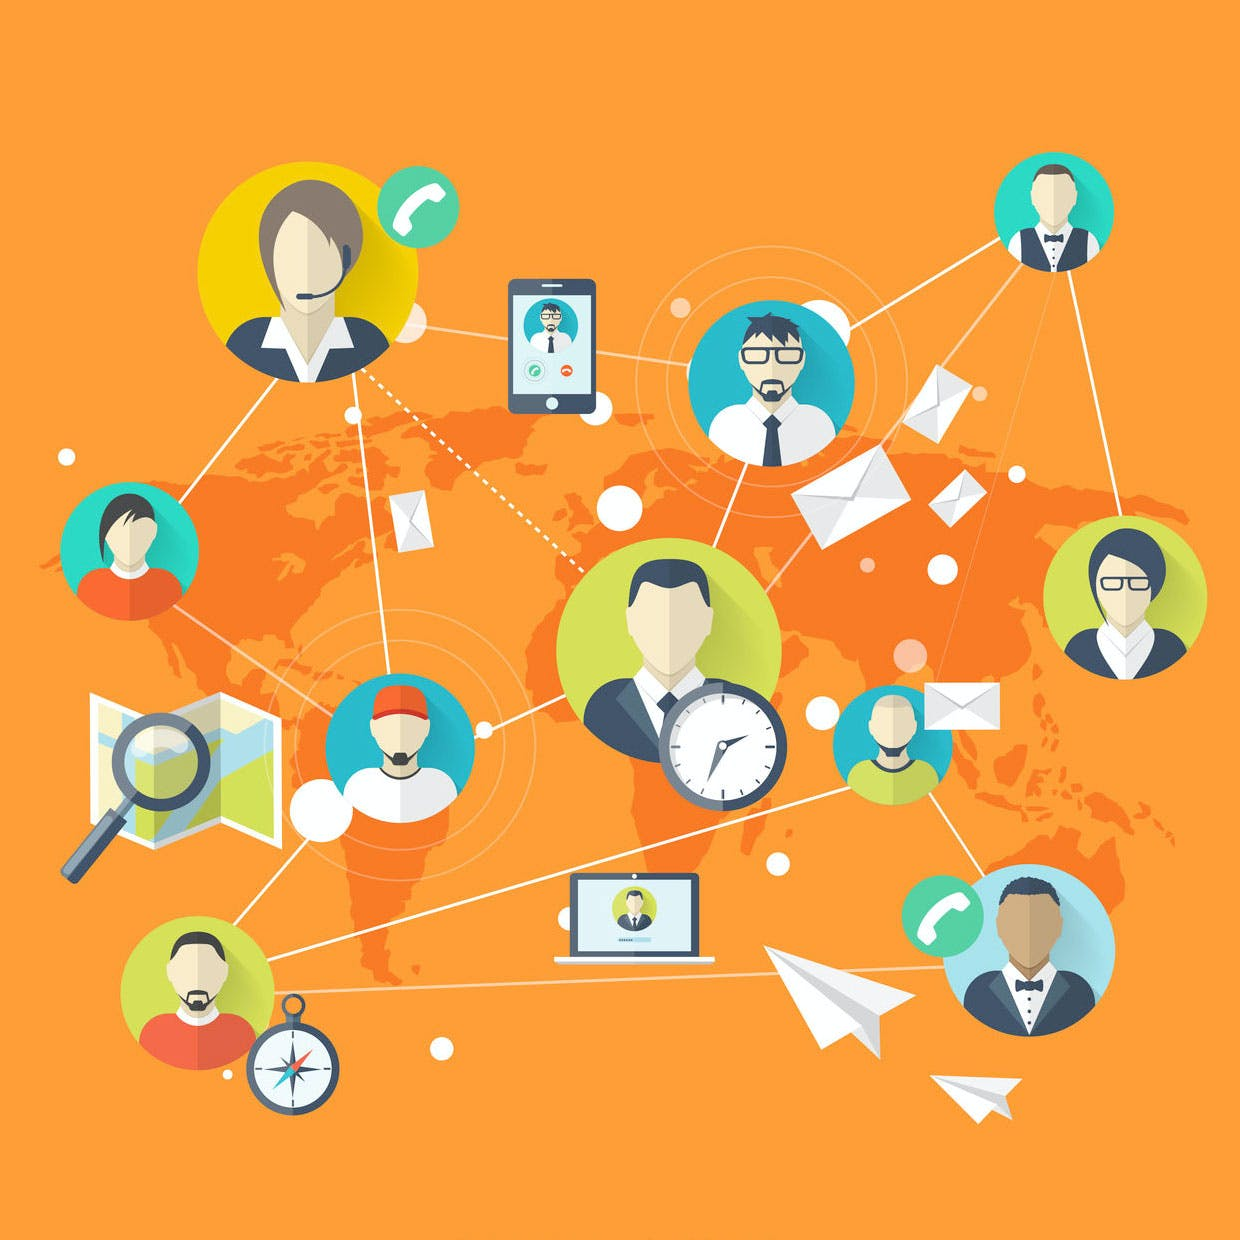 Vectorial image of people and devices, on a orange background displaying the world map. Connectivity concept